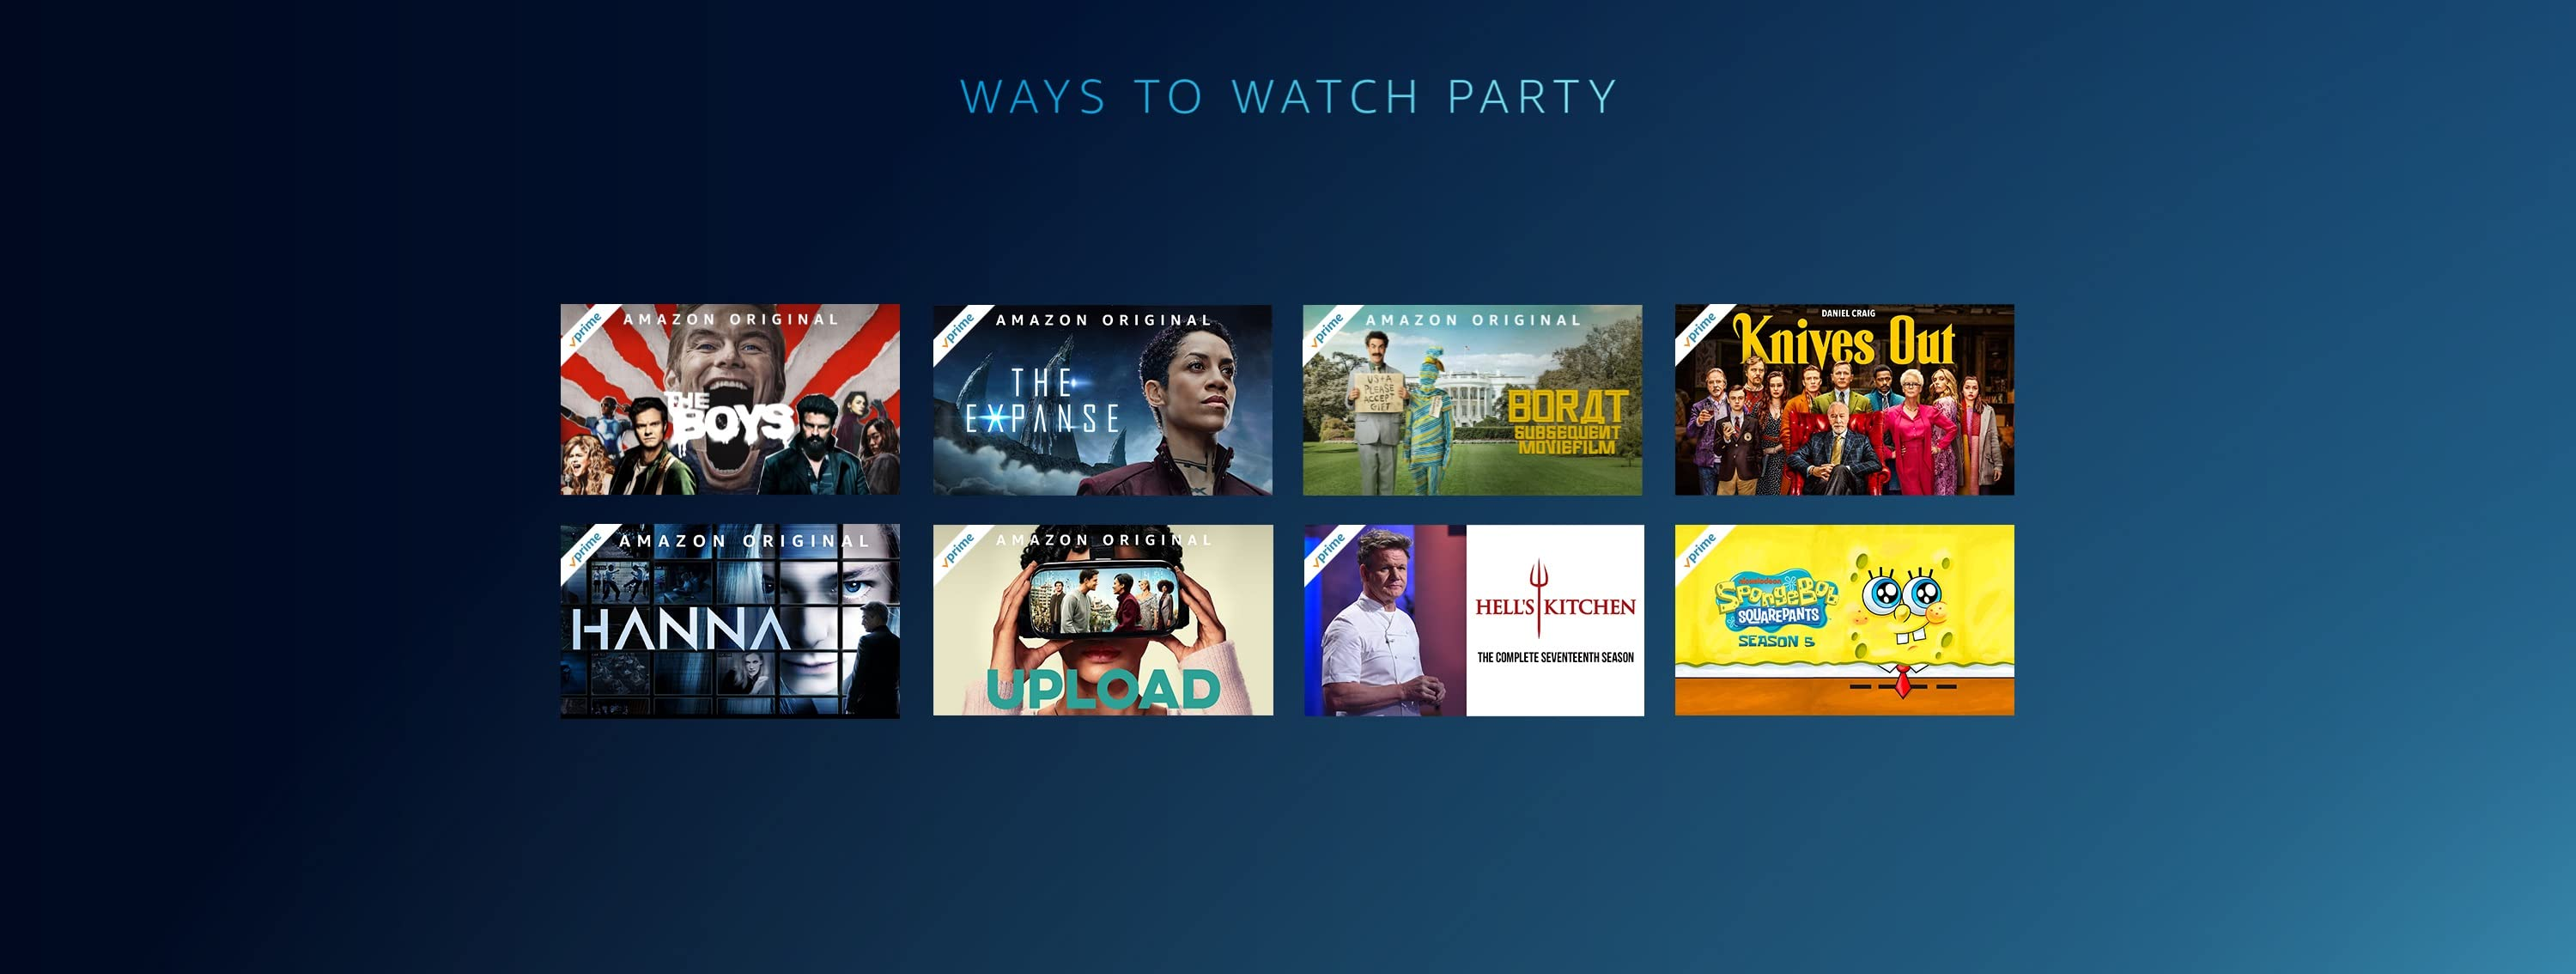 Ways to Watch Party